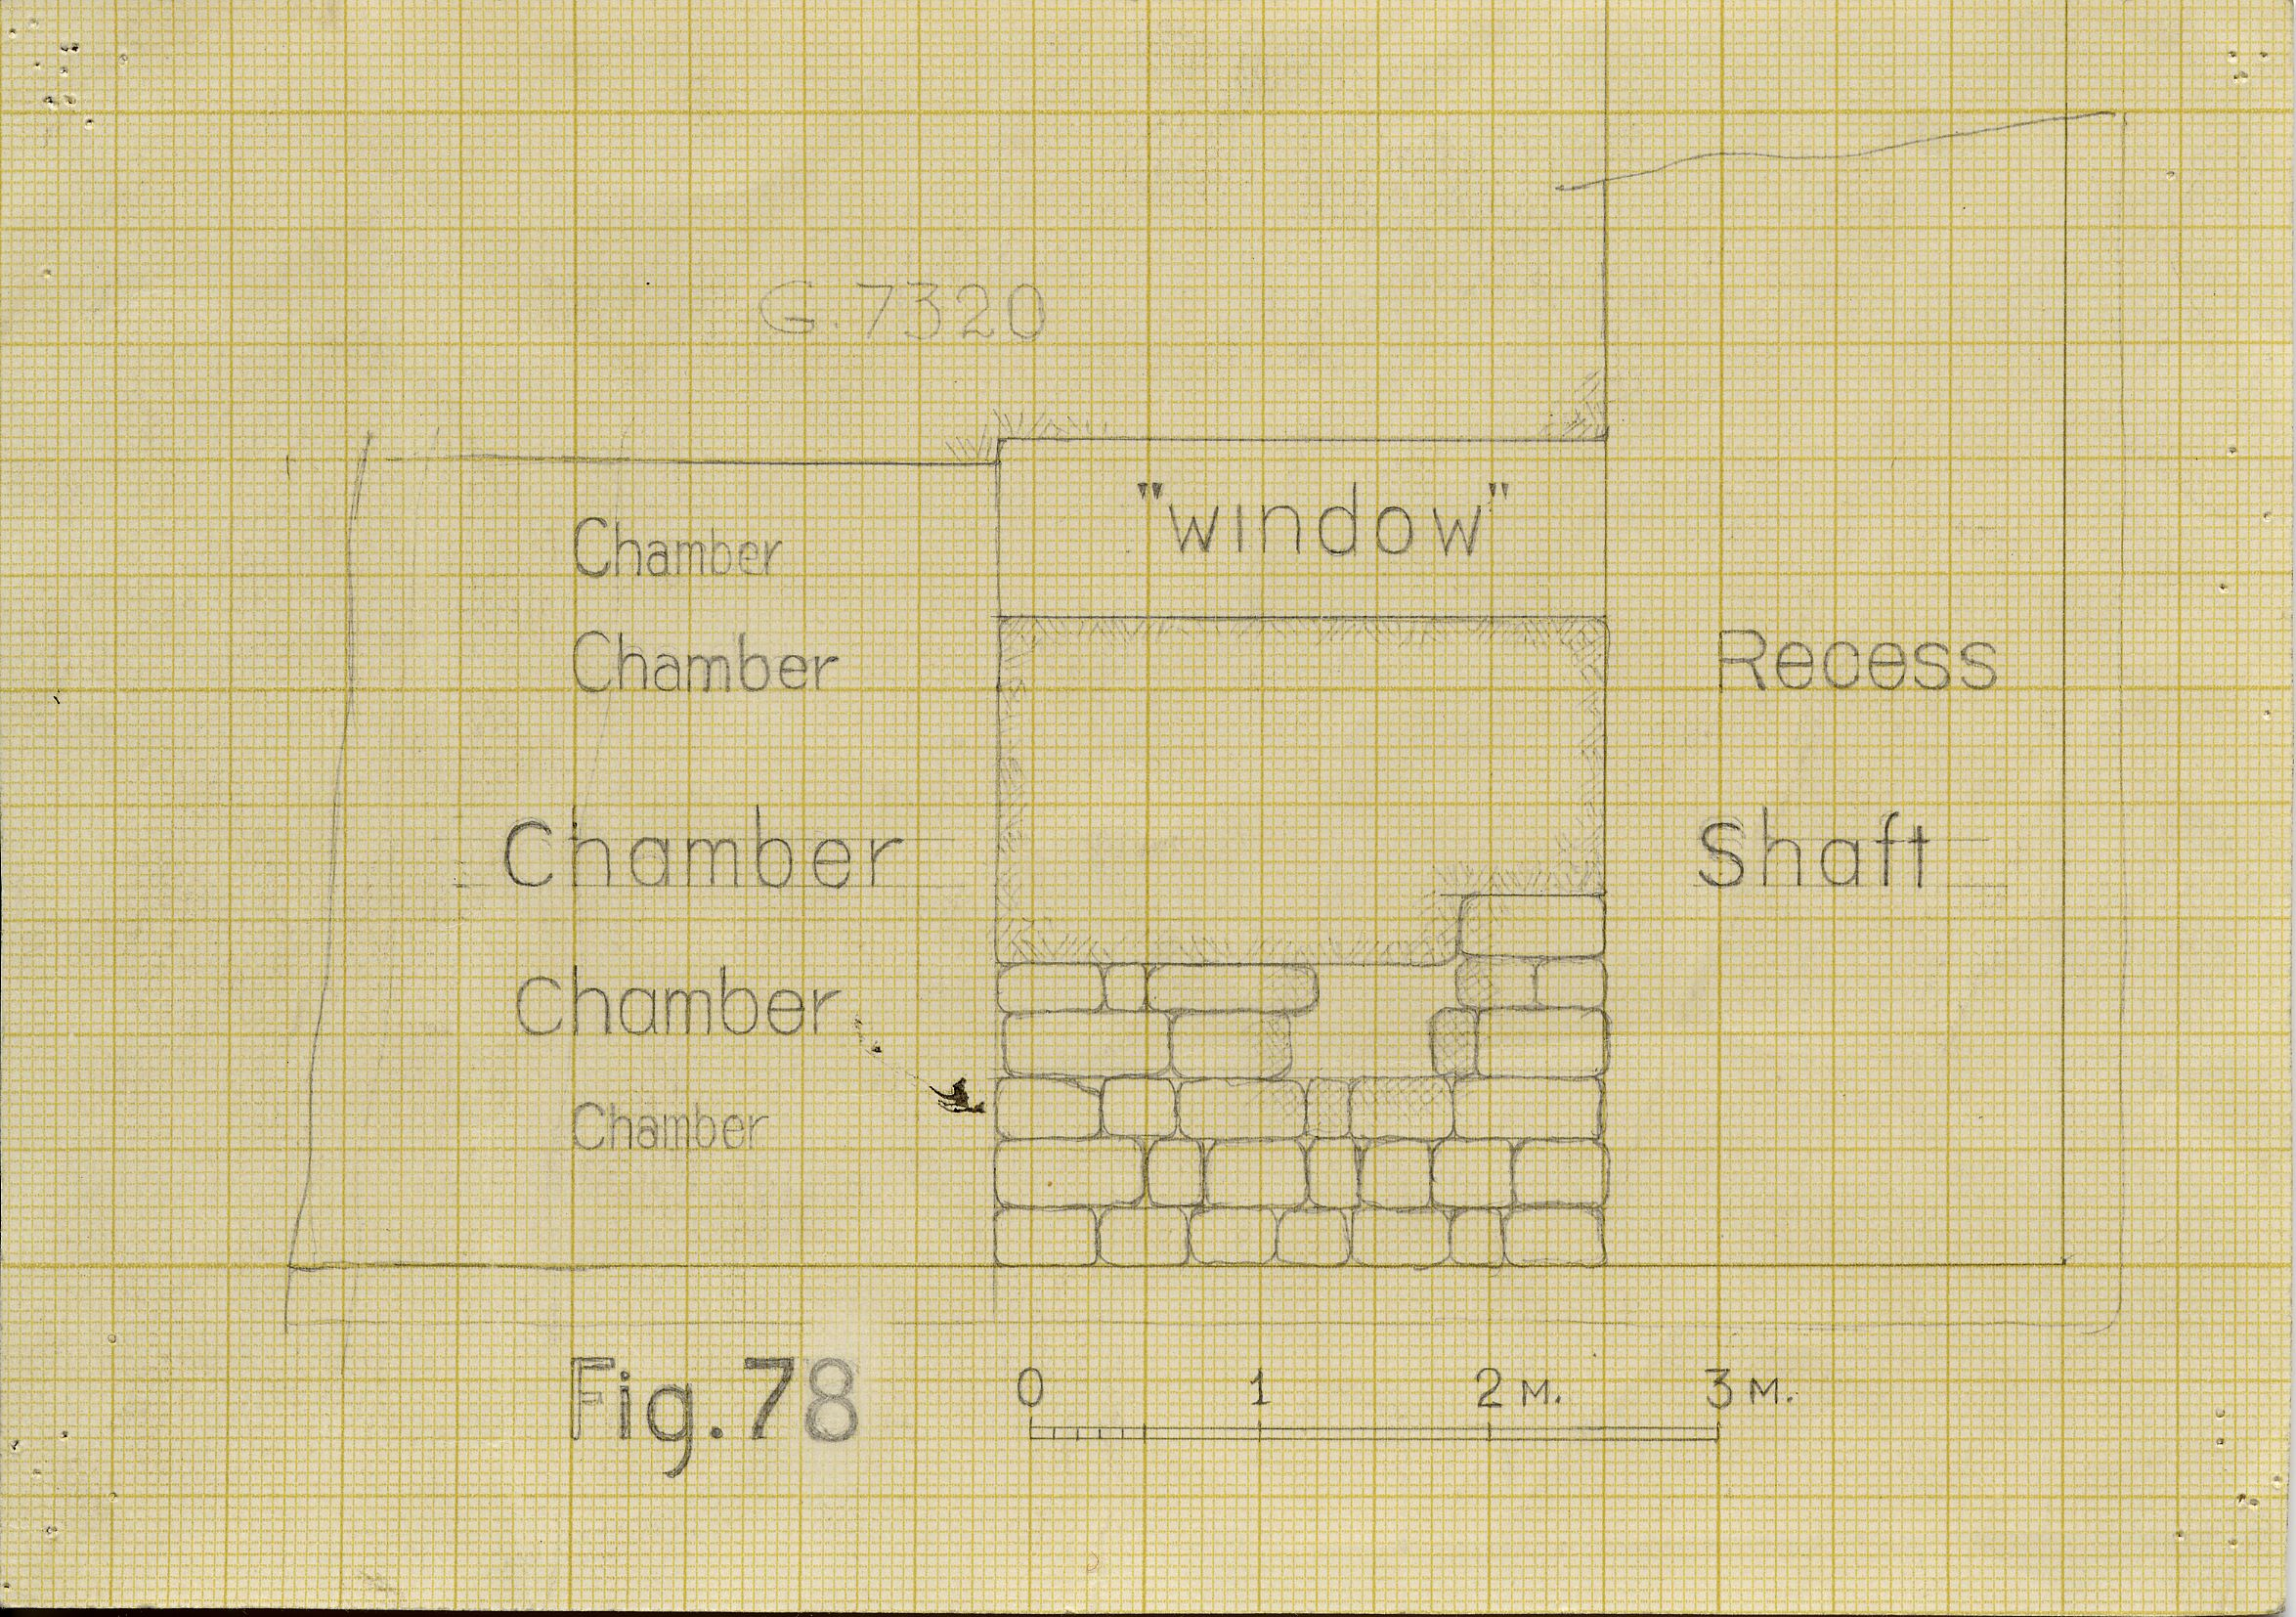 Maps and plans: G 7310-7320: G 7320, Section of chapel area